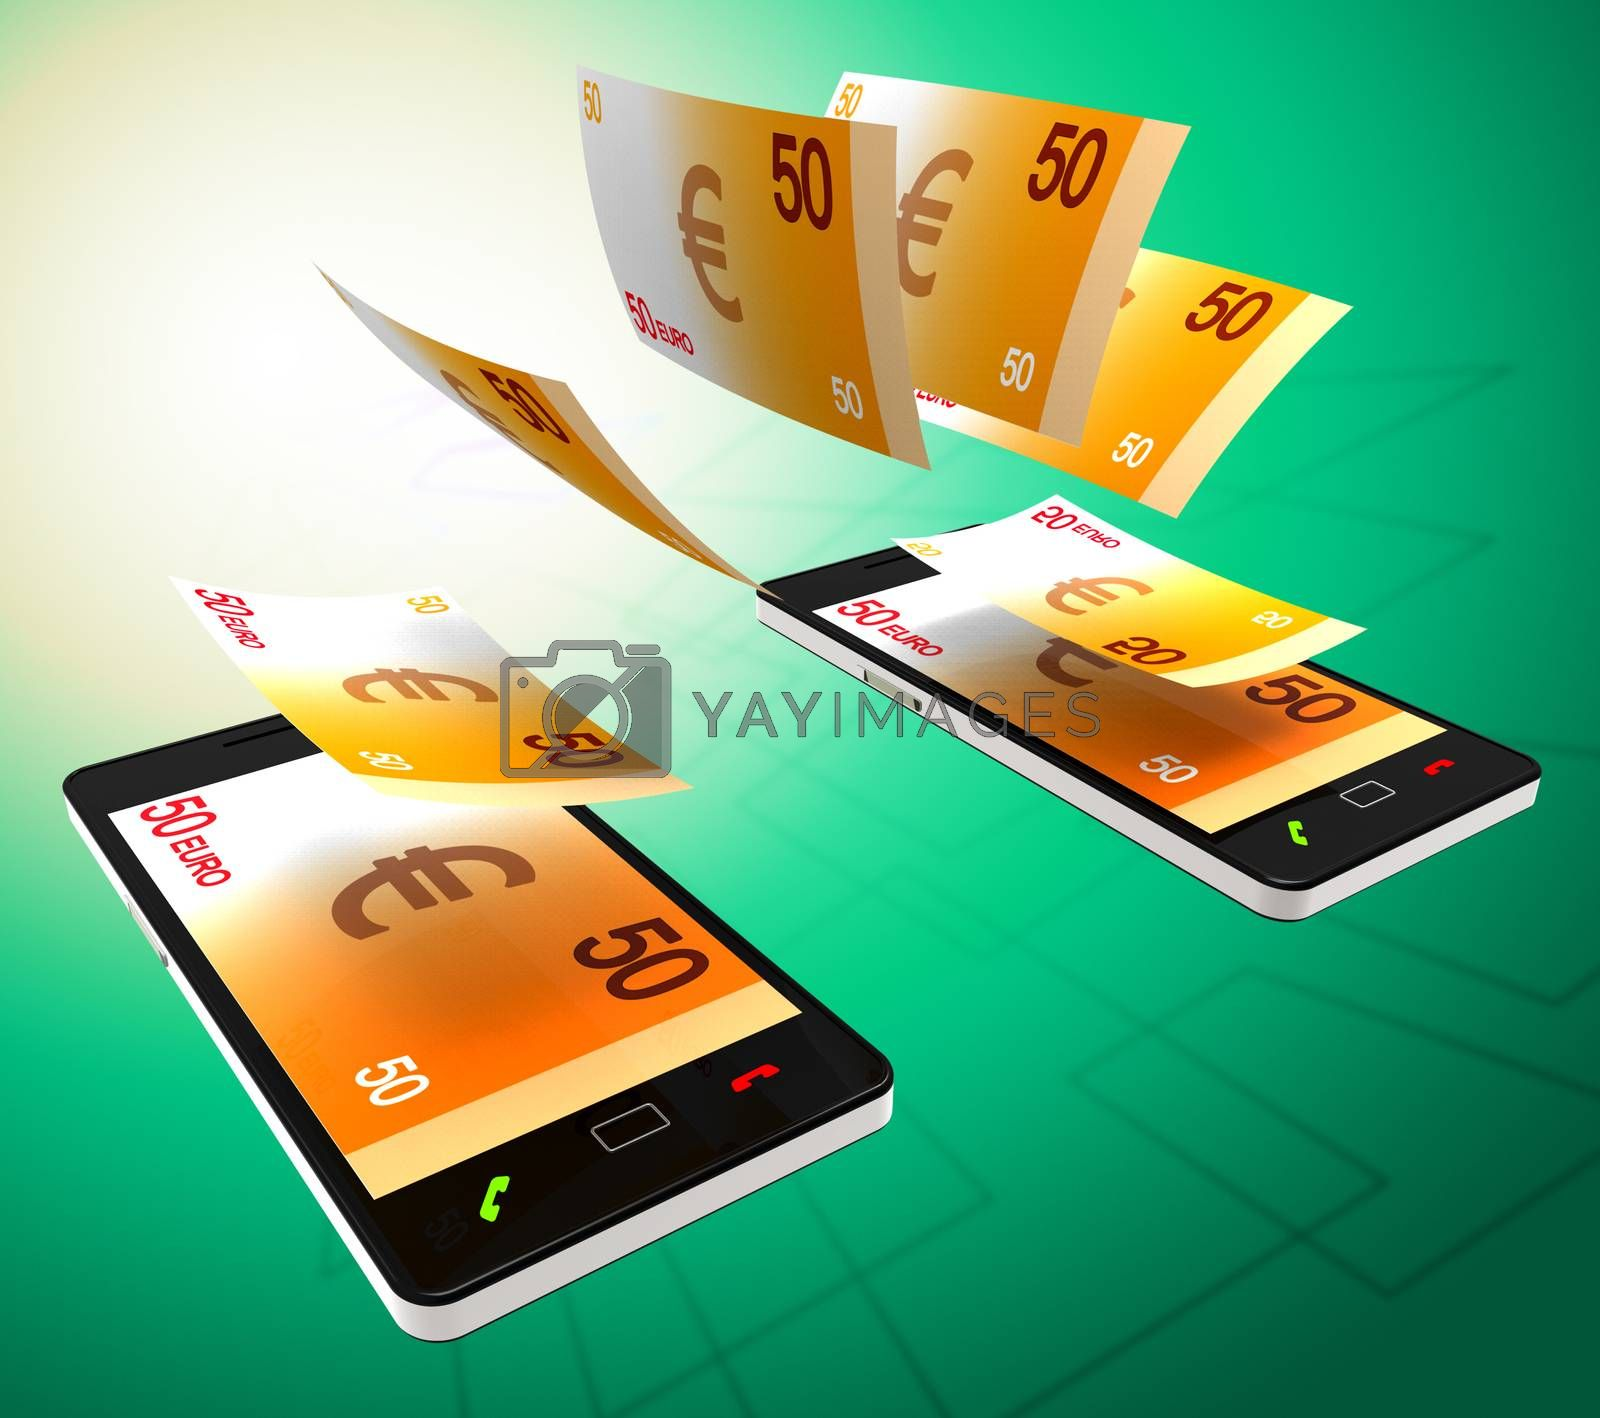 Euros Transfer Represents Cellphone Money And Banking by stuartmiles